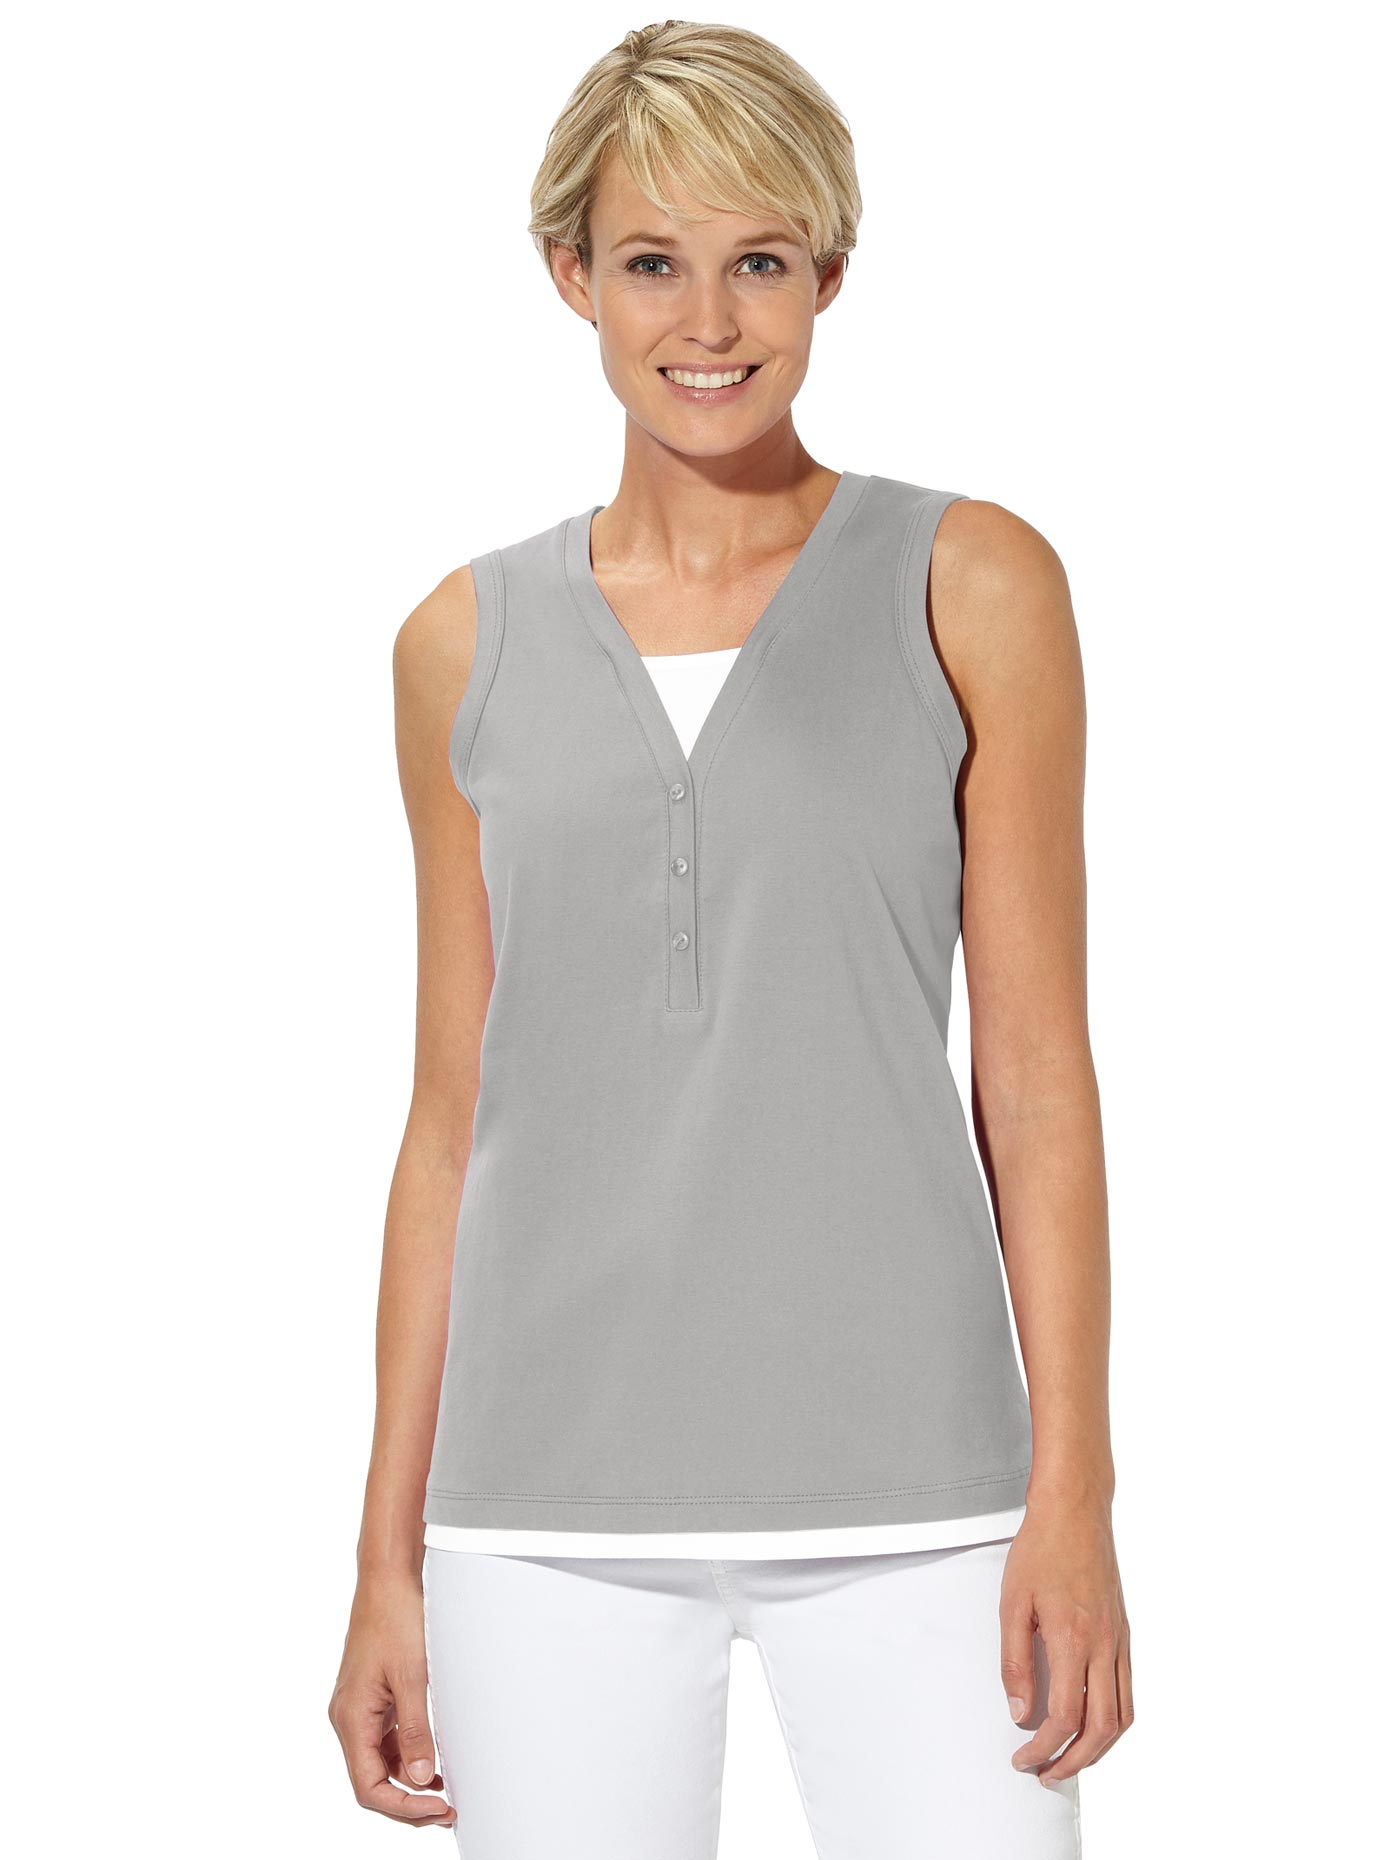 Collection L Shirttop in der flotten 2-in-1-Optik | Bekleidung > Tops > 2-in-1-Tops | Casual Looks